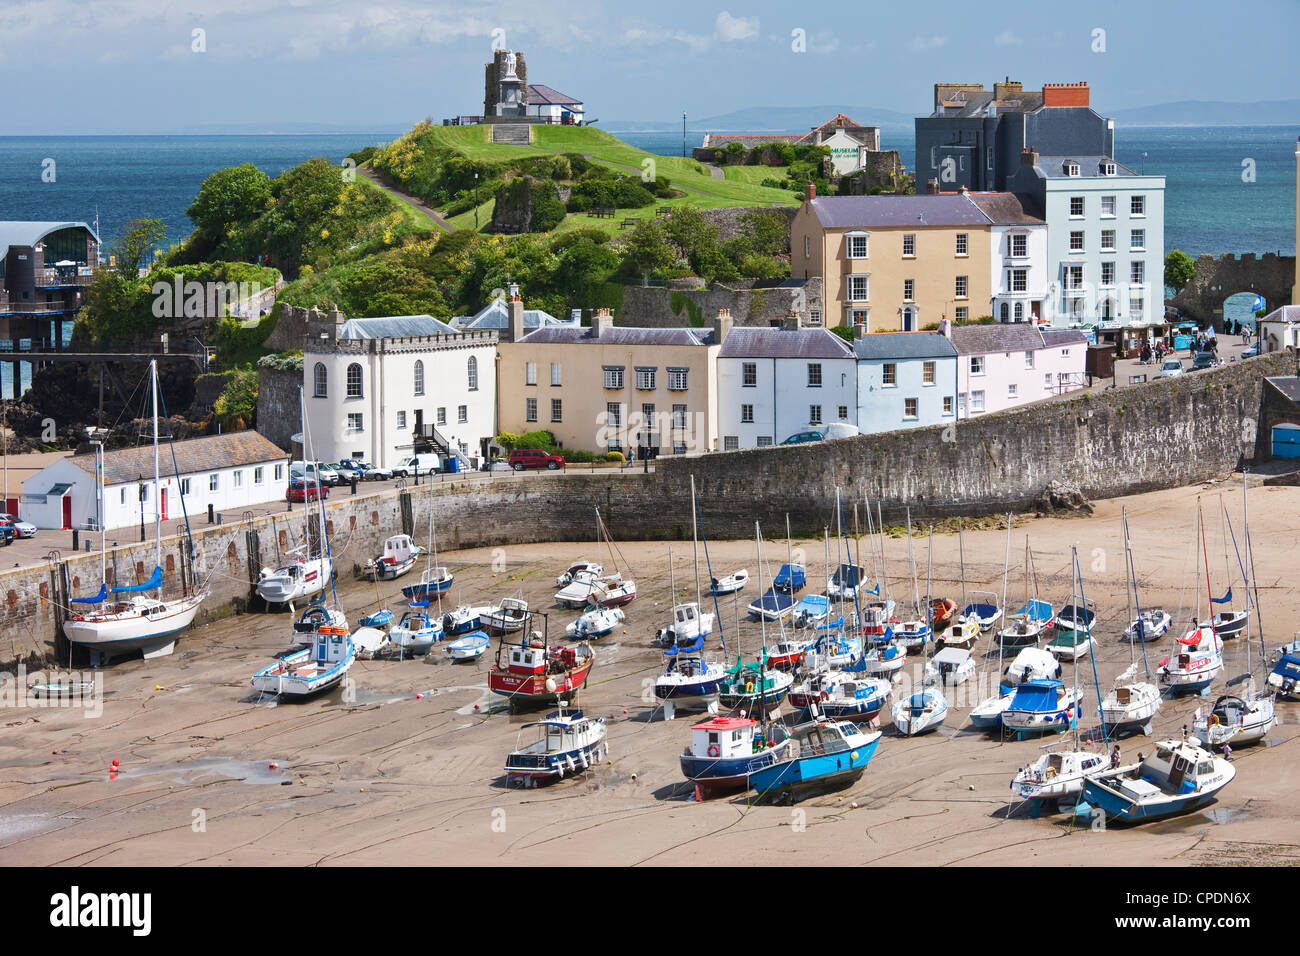 Tenby Harbour, Tenby, Pembrokeshire, Wales, United Kingdom, Europe - Stock Image